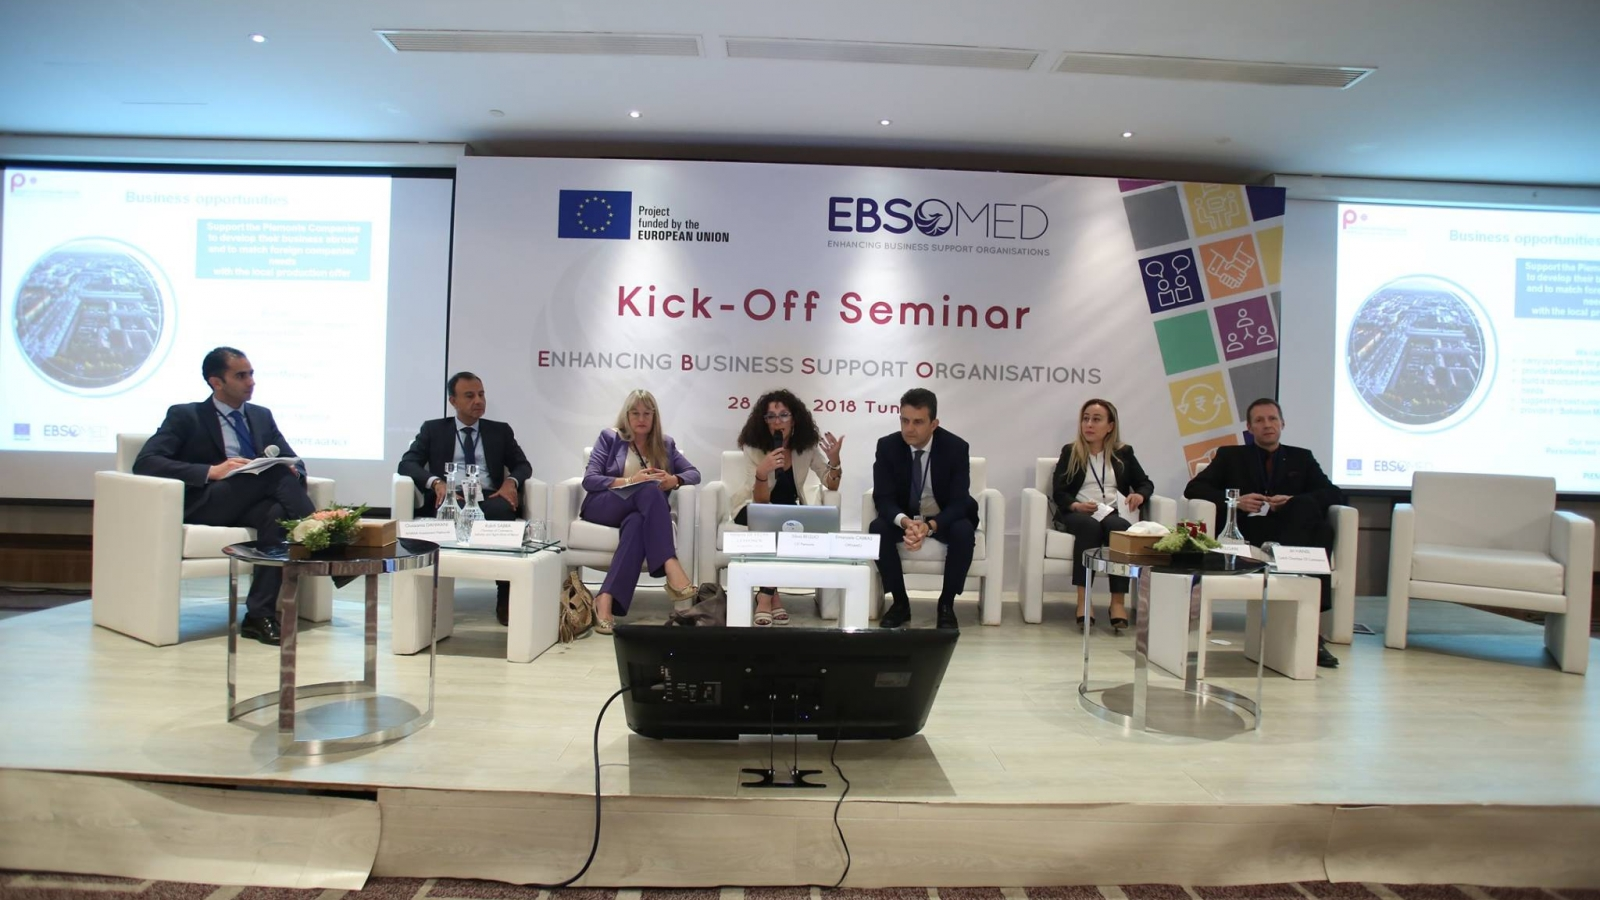 EBSOMED kick-off seminar in Tunis